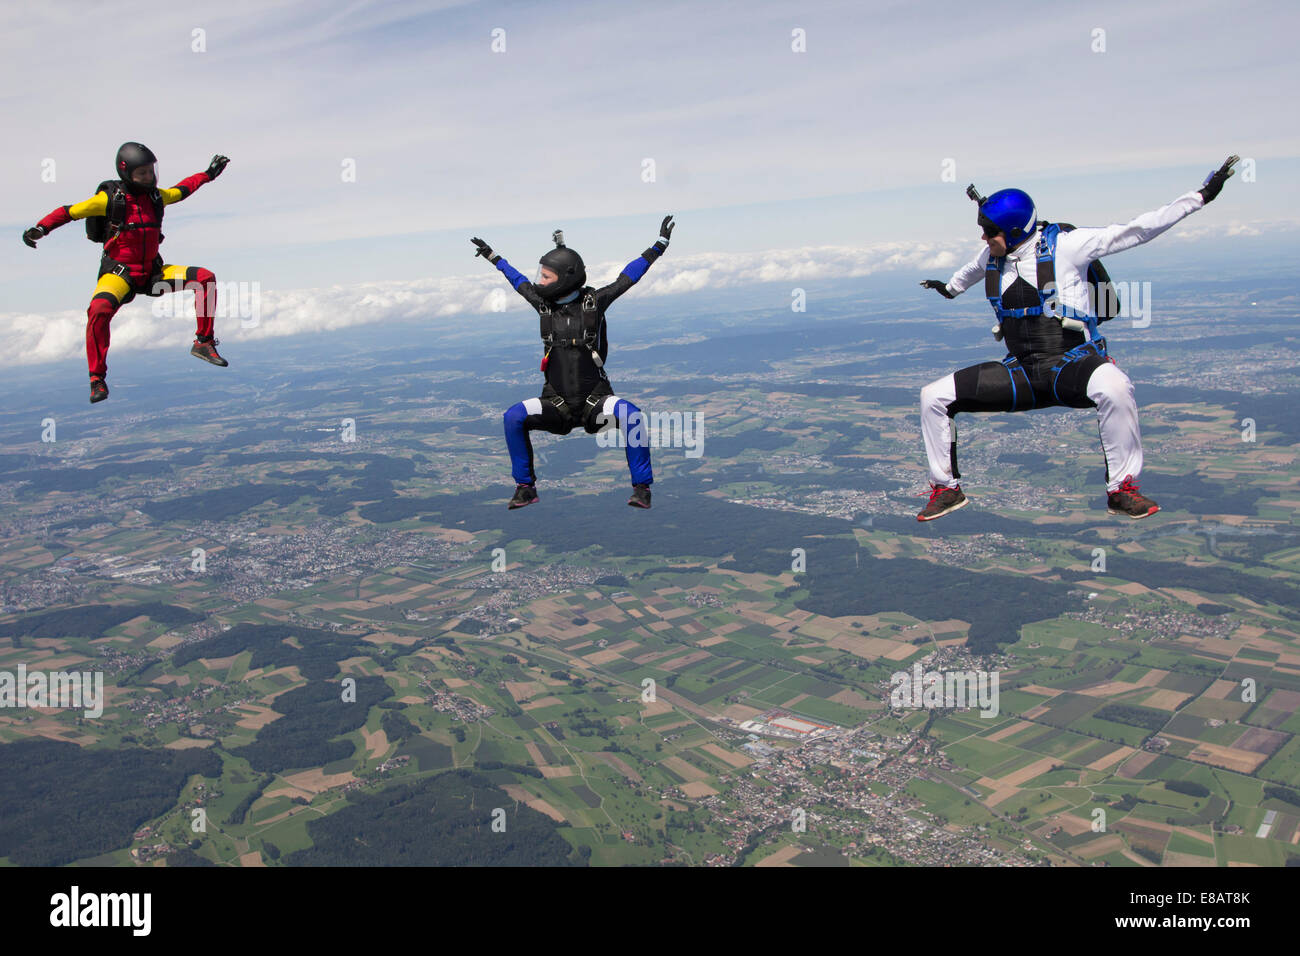 Team of three skydivers in sit fly position over Buttwil, Luzern, Switzerland - Stock Image